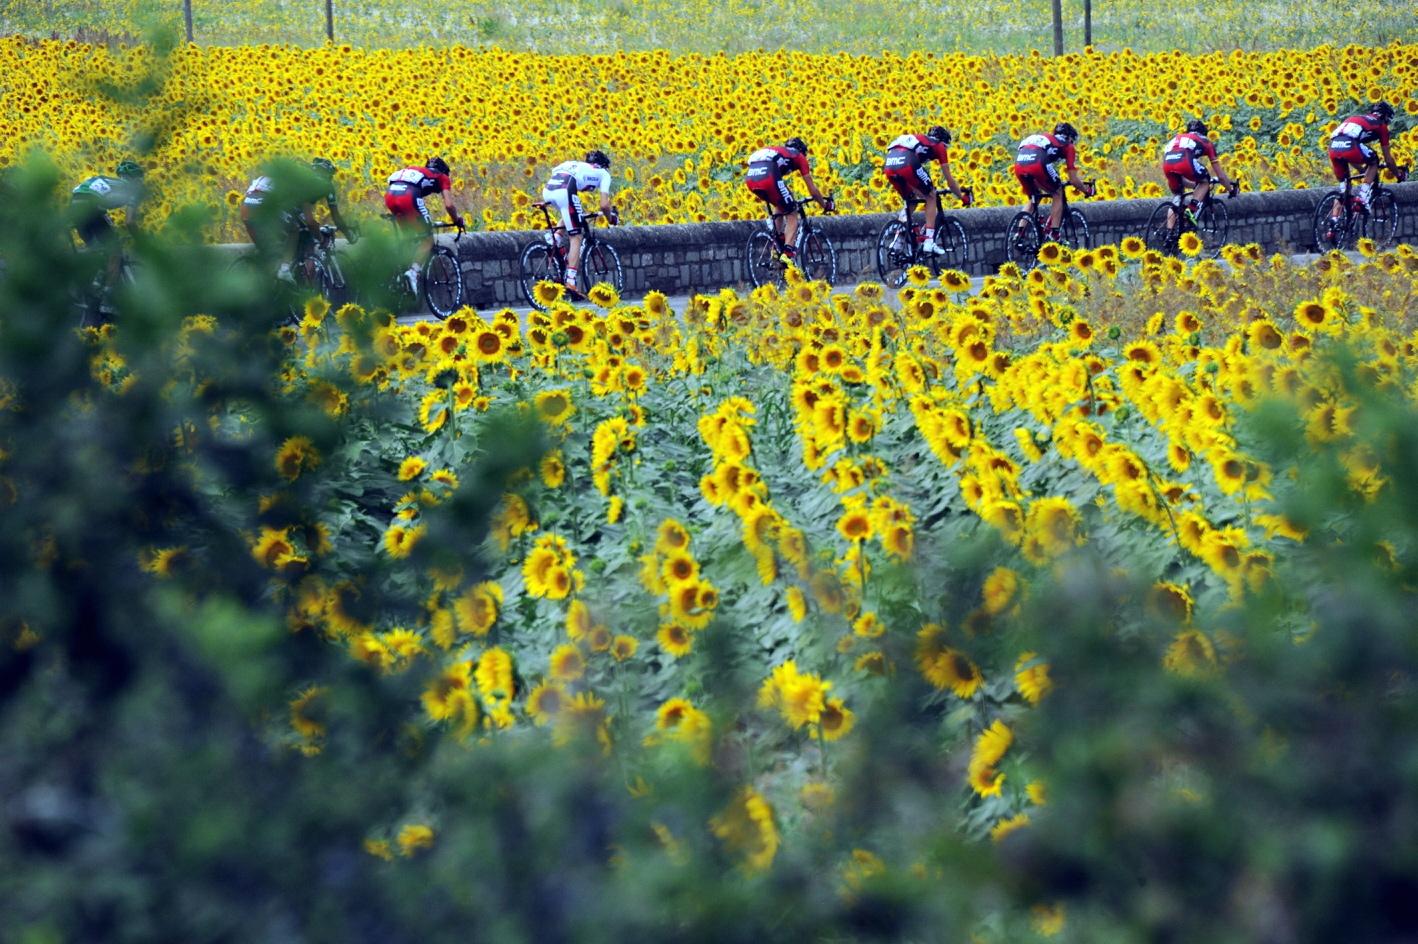 Le Tour de France will pass by the County Hotel in South Woodford on Monday.